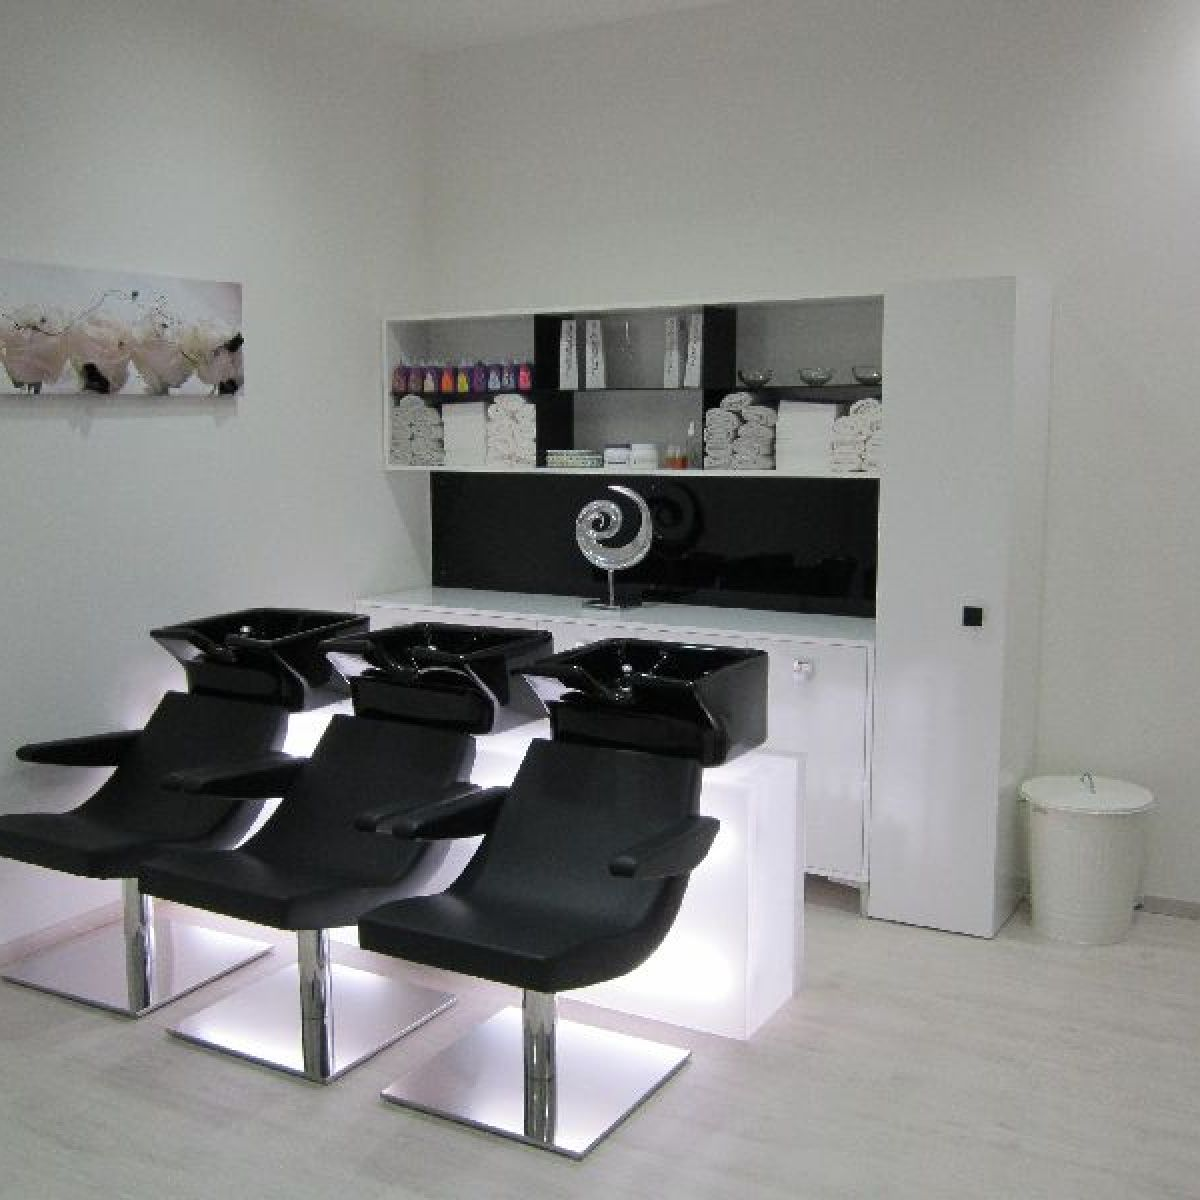 nelson mobilier fabricant mobilier de coiffure made in. Black Bedroom Furniture Sets. Home Design Ideas